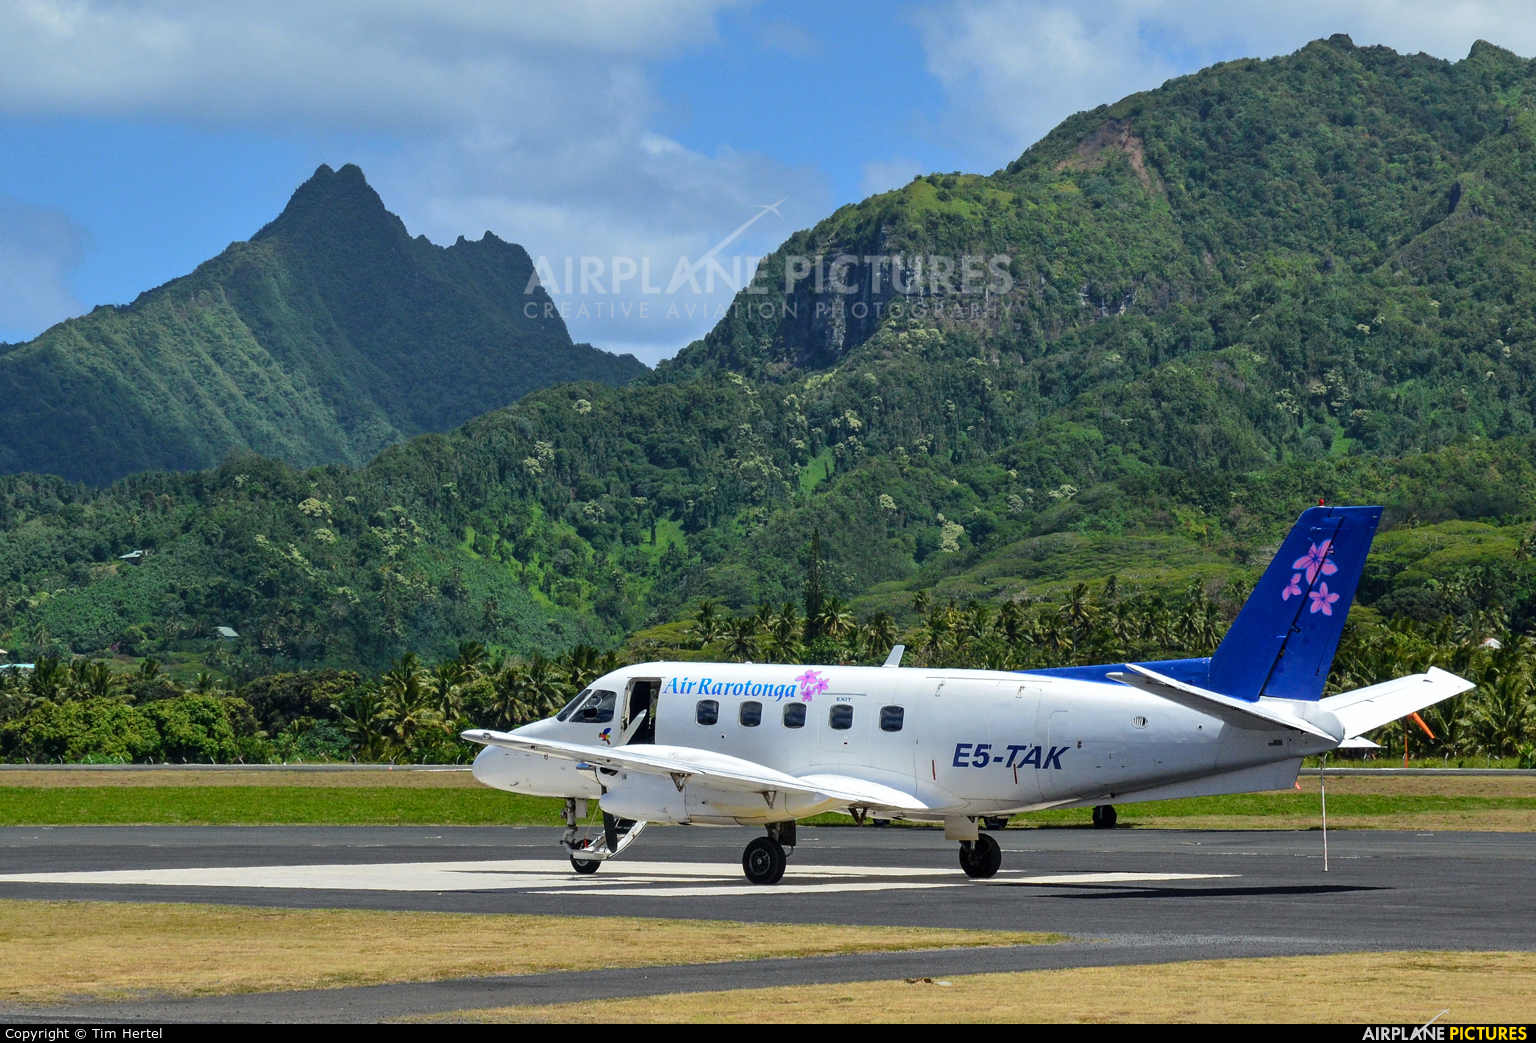 Air Rarotonga E5-TAK aircraft at Rarotonga International